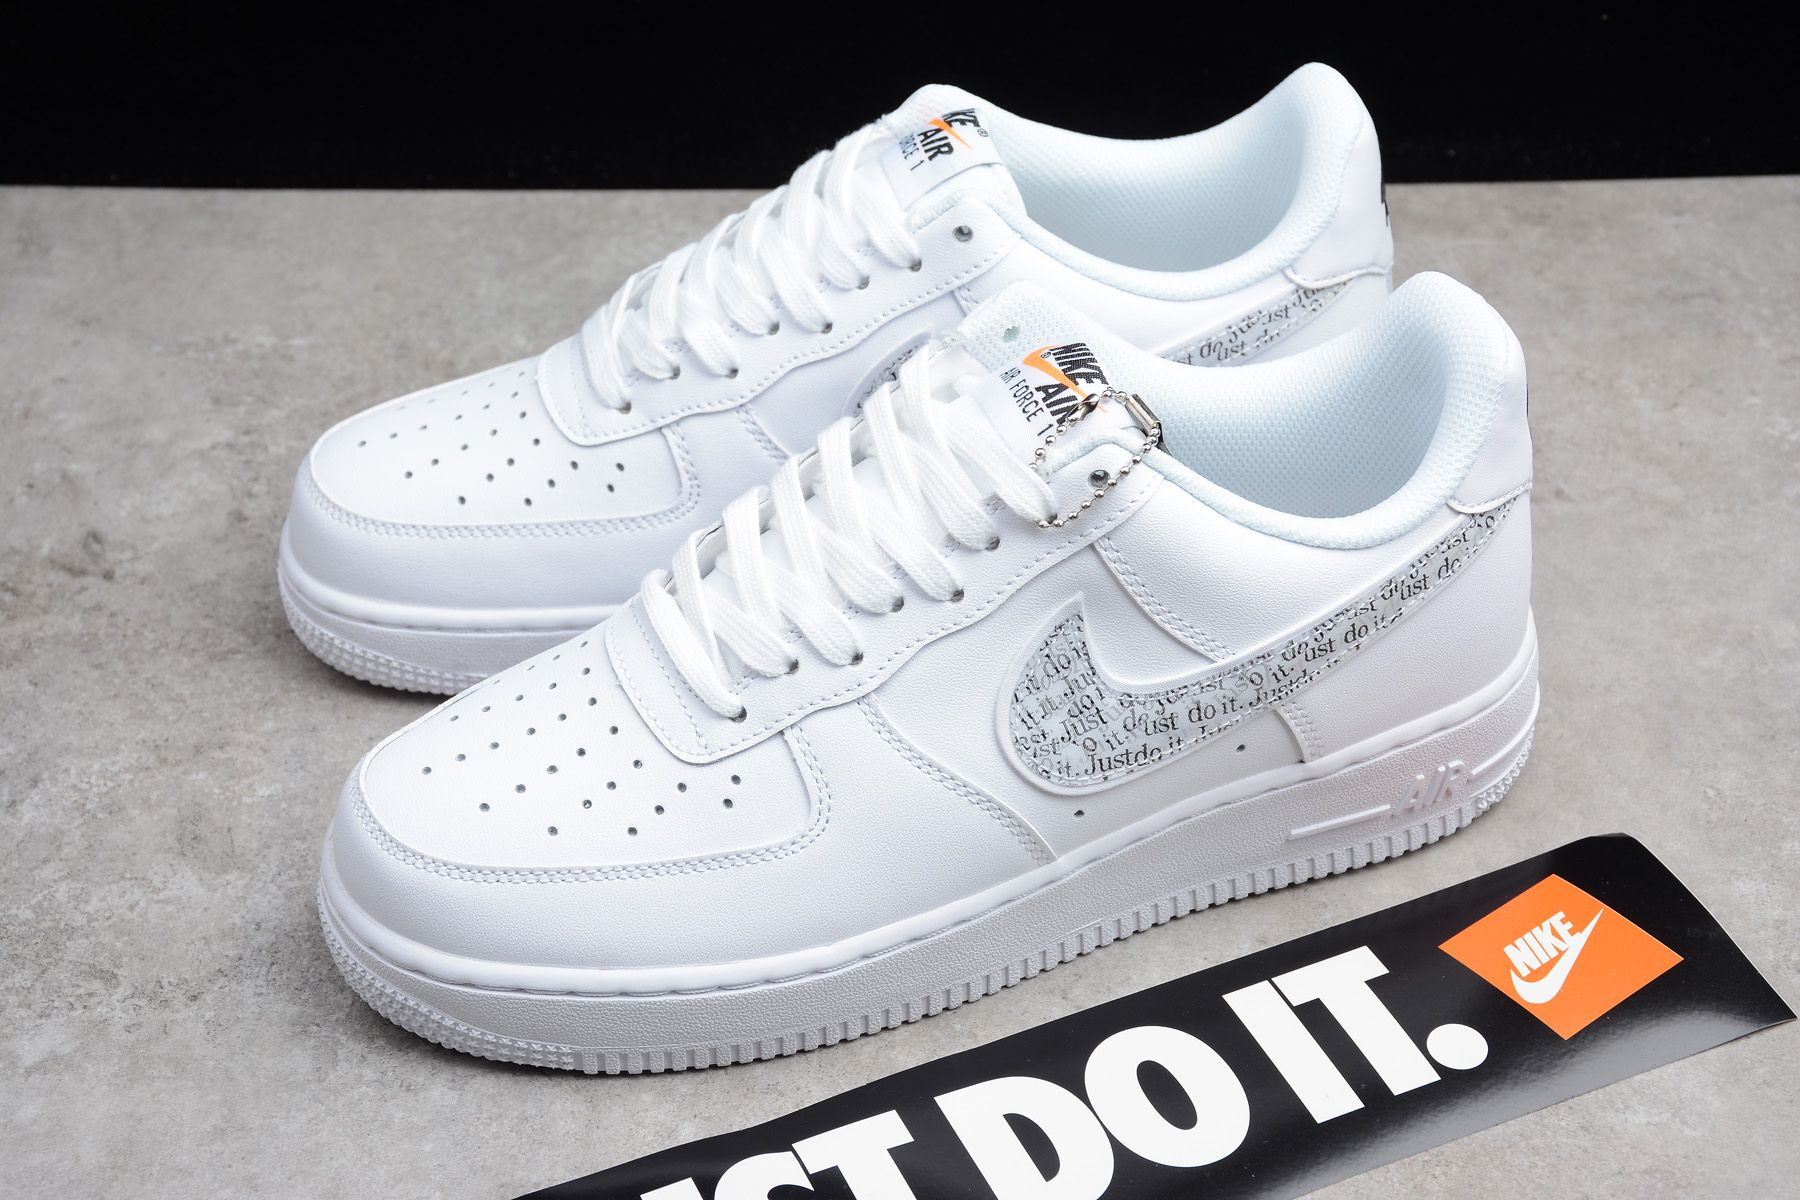 Nike Air Force 1 Lv8 Just Do It White Black Total Orange Bq5361 100 Nike Shoes Air Force Nike Air Shoes Sneakers Nike